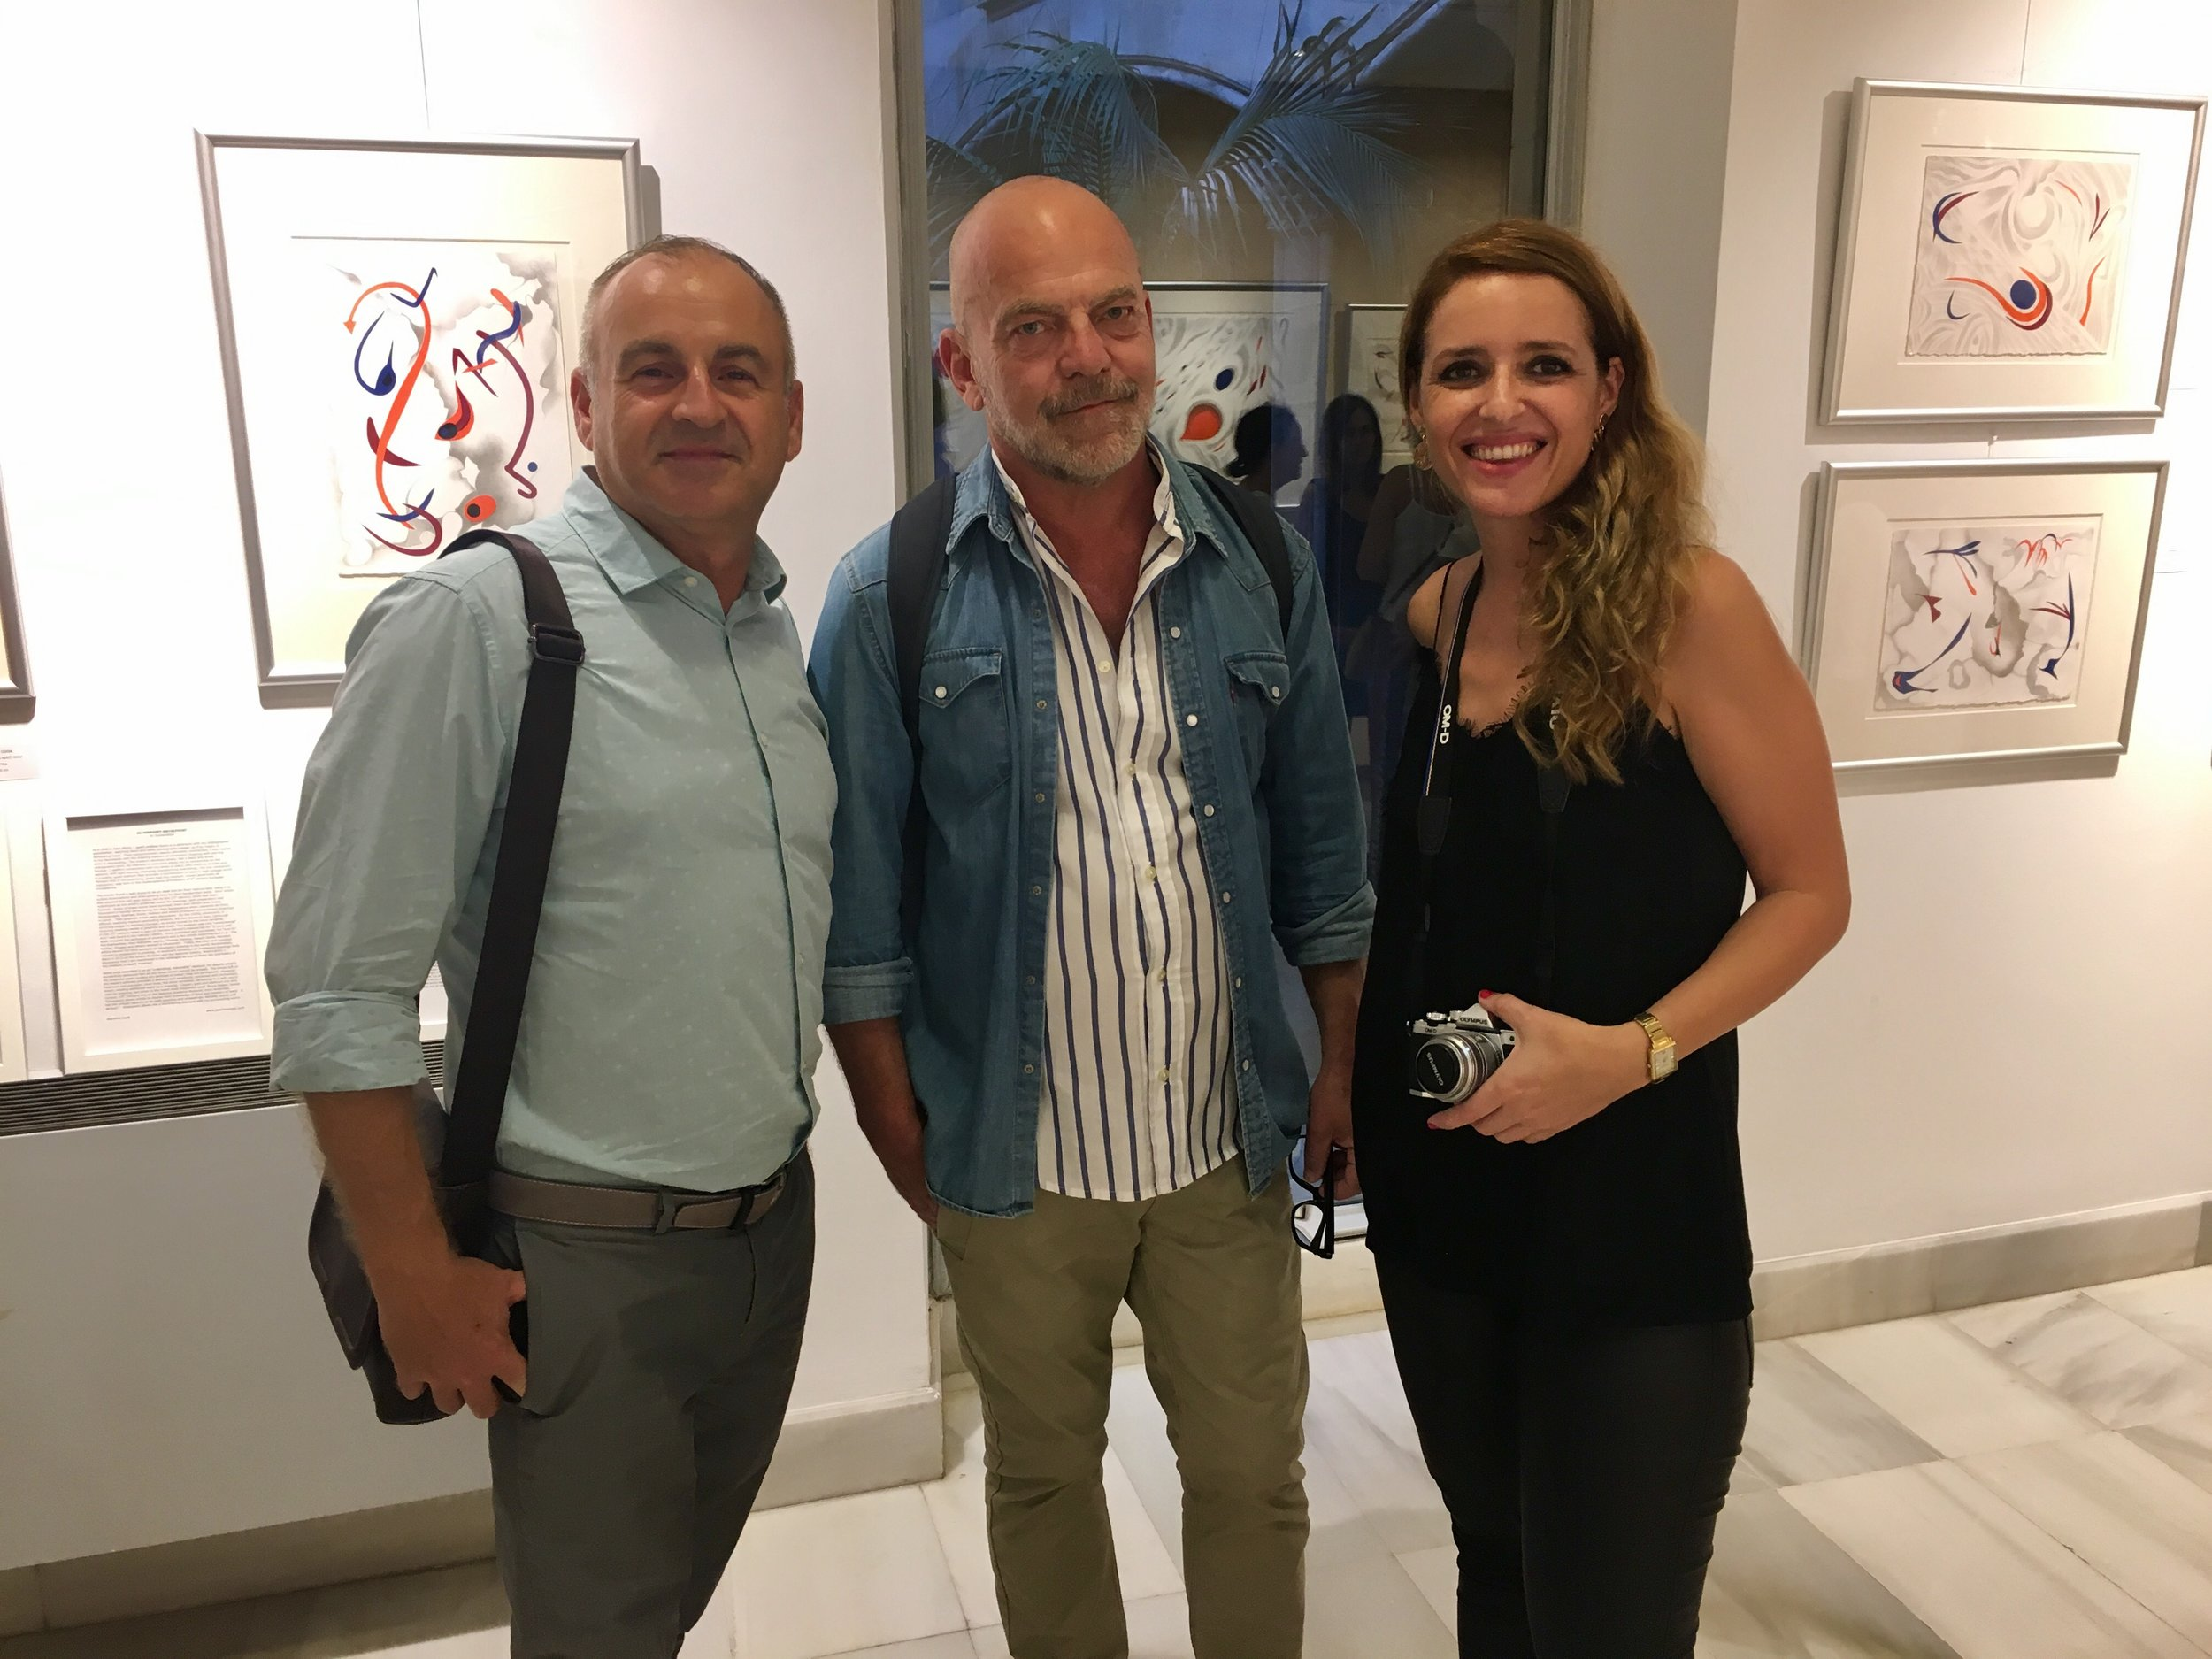 To the right, Pilar Pujol, curator of the exhibition at the FundaciónBarceló, Palma